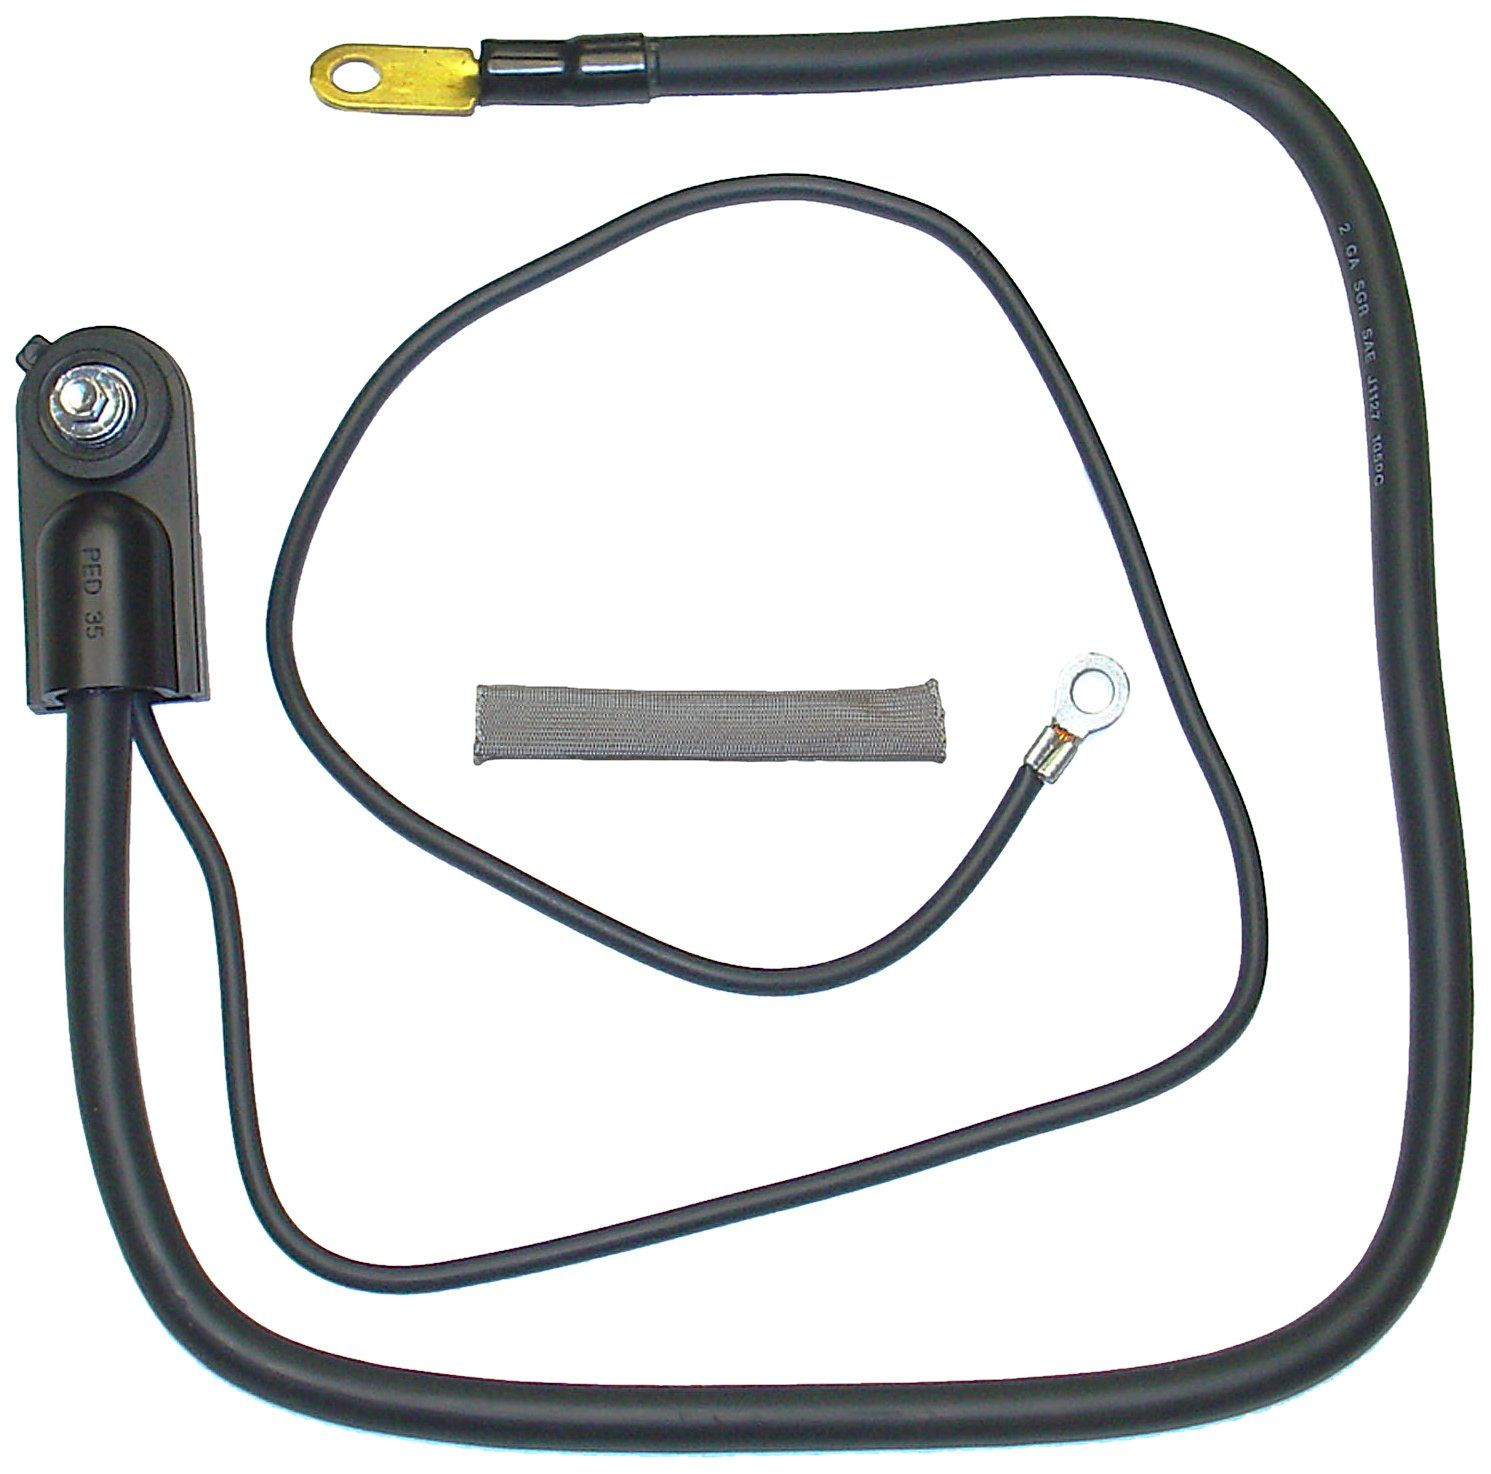 ACDelco SD47XE Professional 0 Gauge Positive Side Terminal Battery Fuse Block Cable with Auxiliary Leads